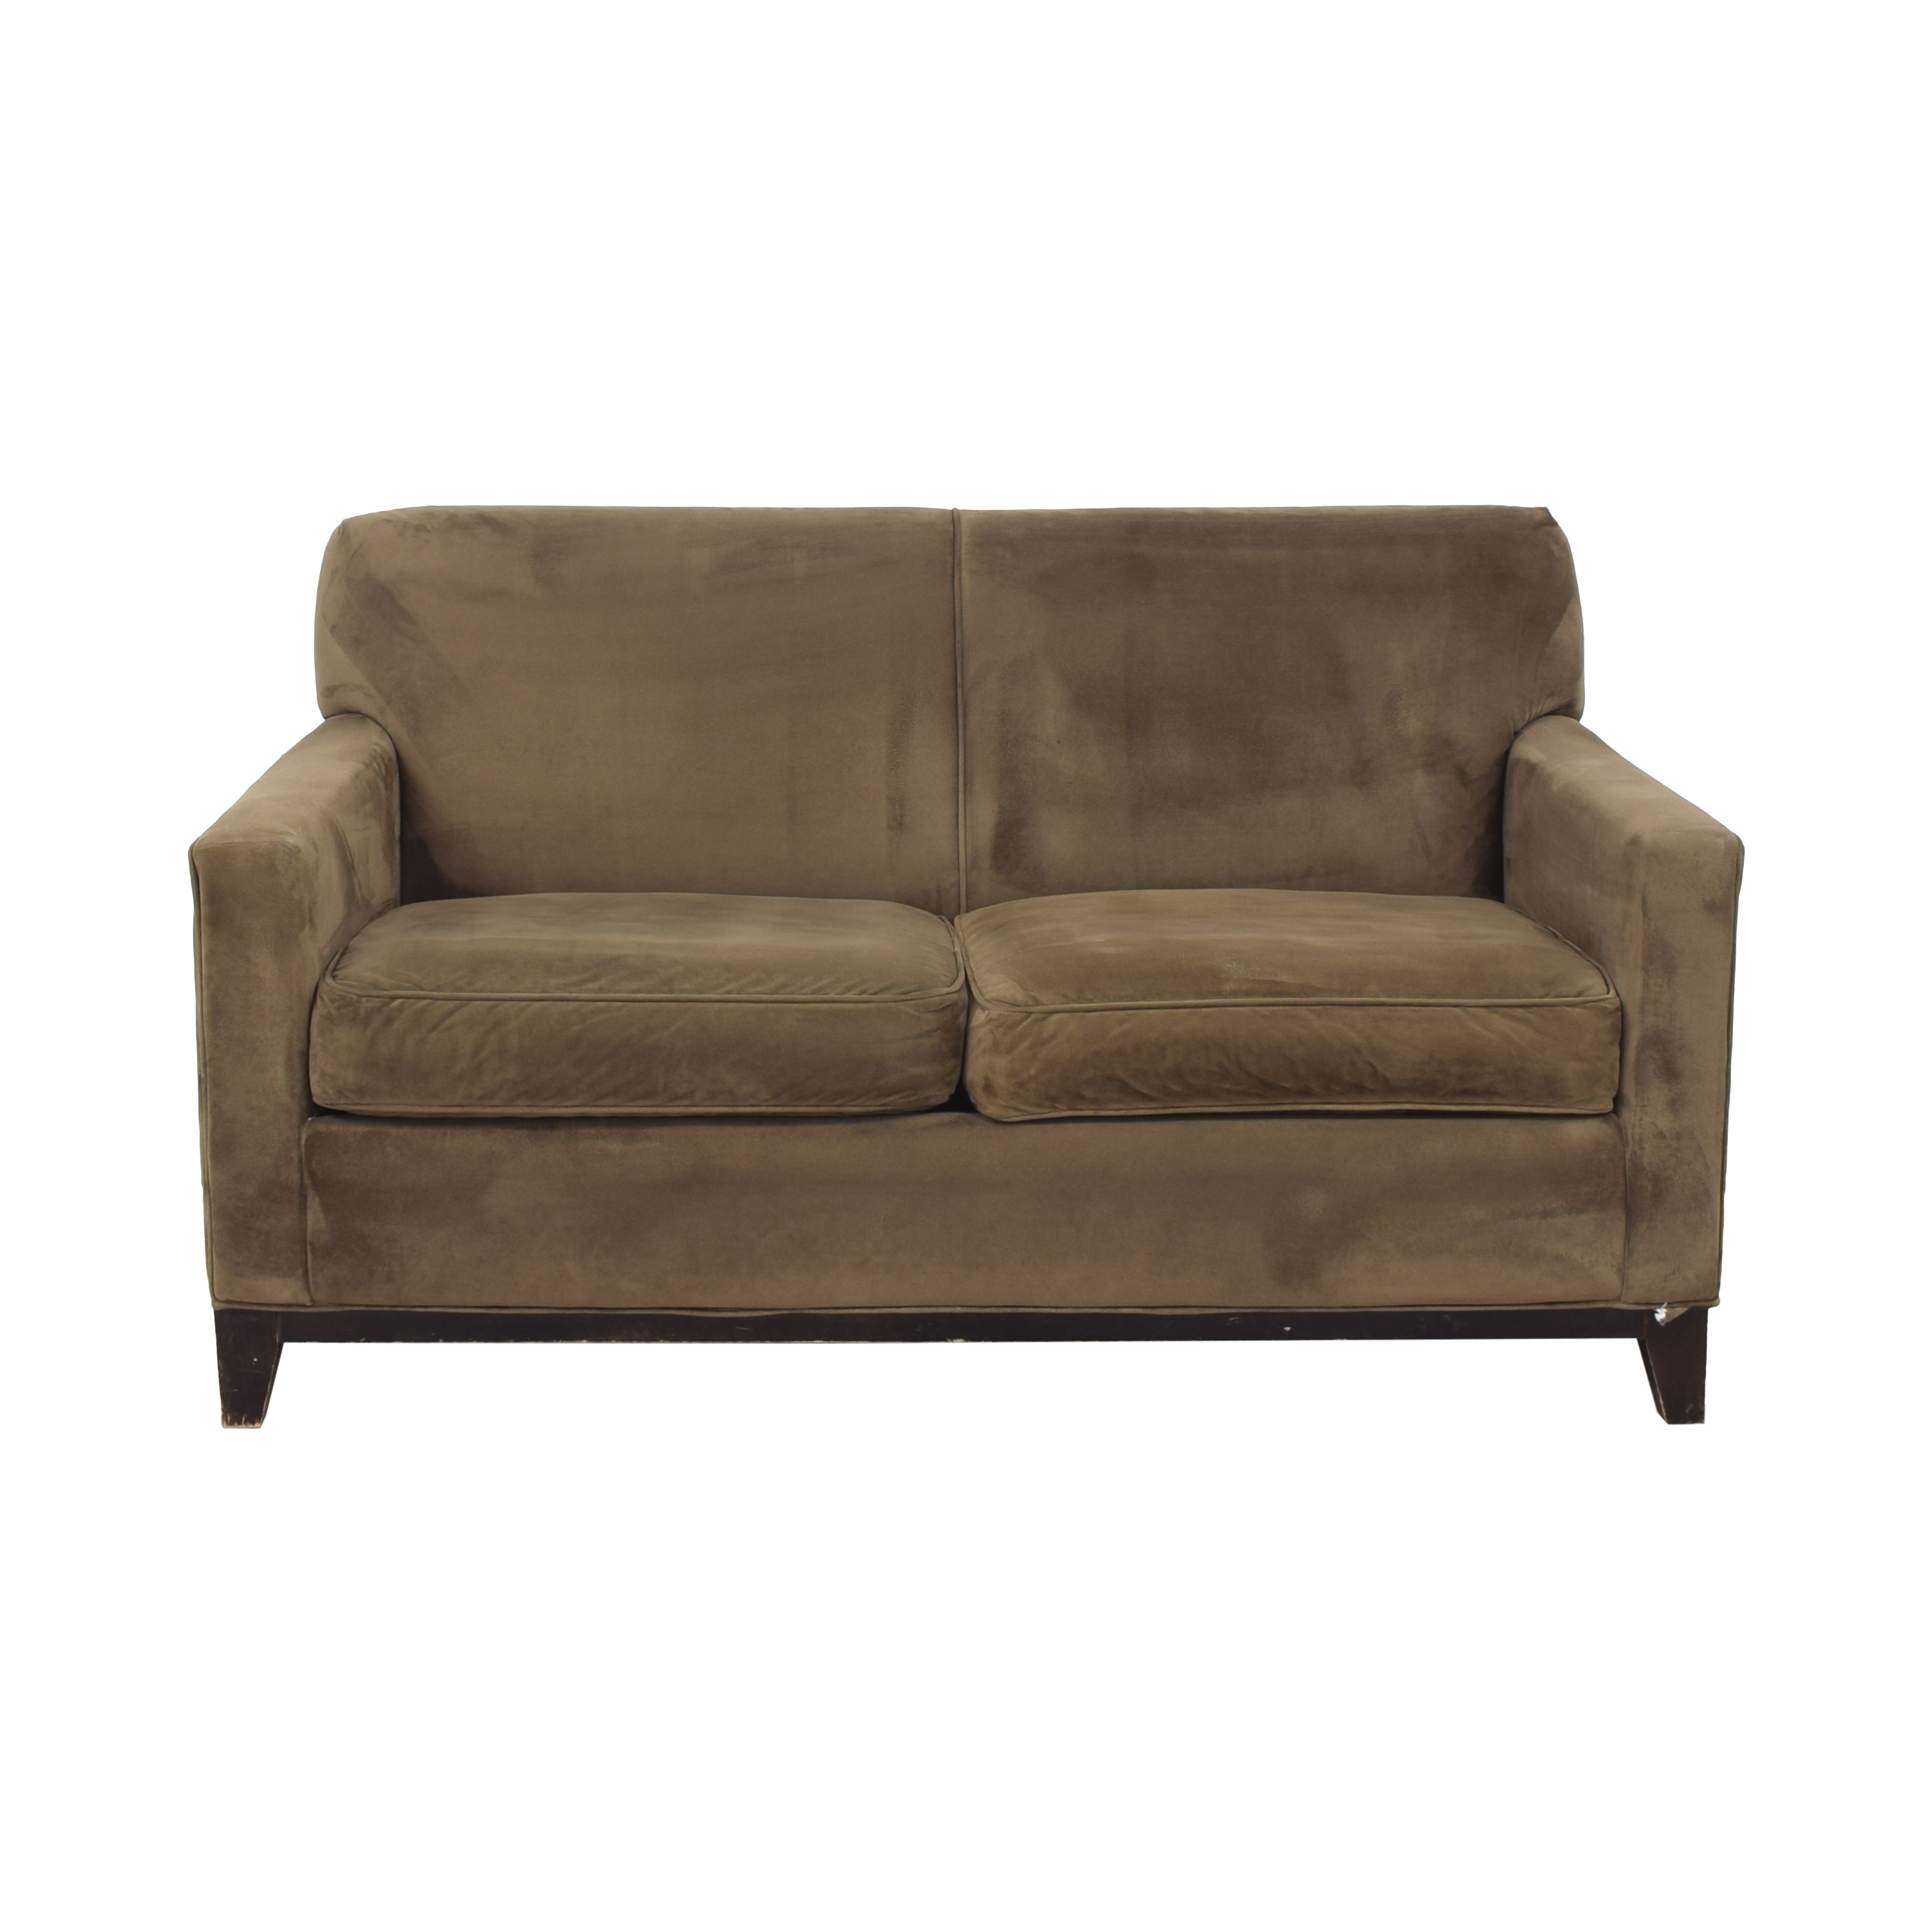 Rowe Furniture Rowe Furniture Loveseat discount